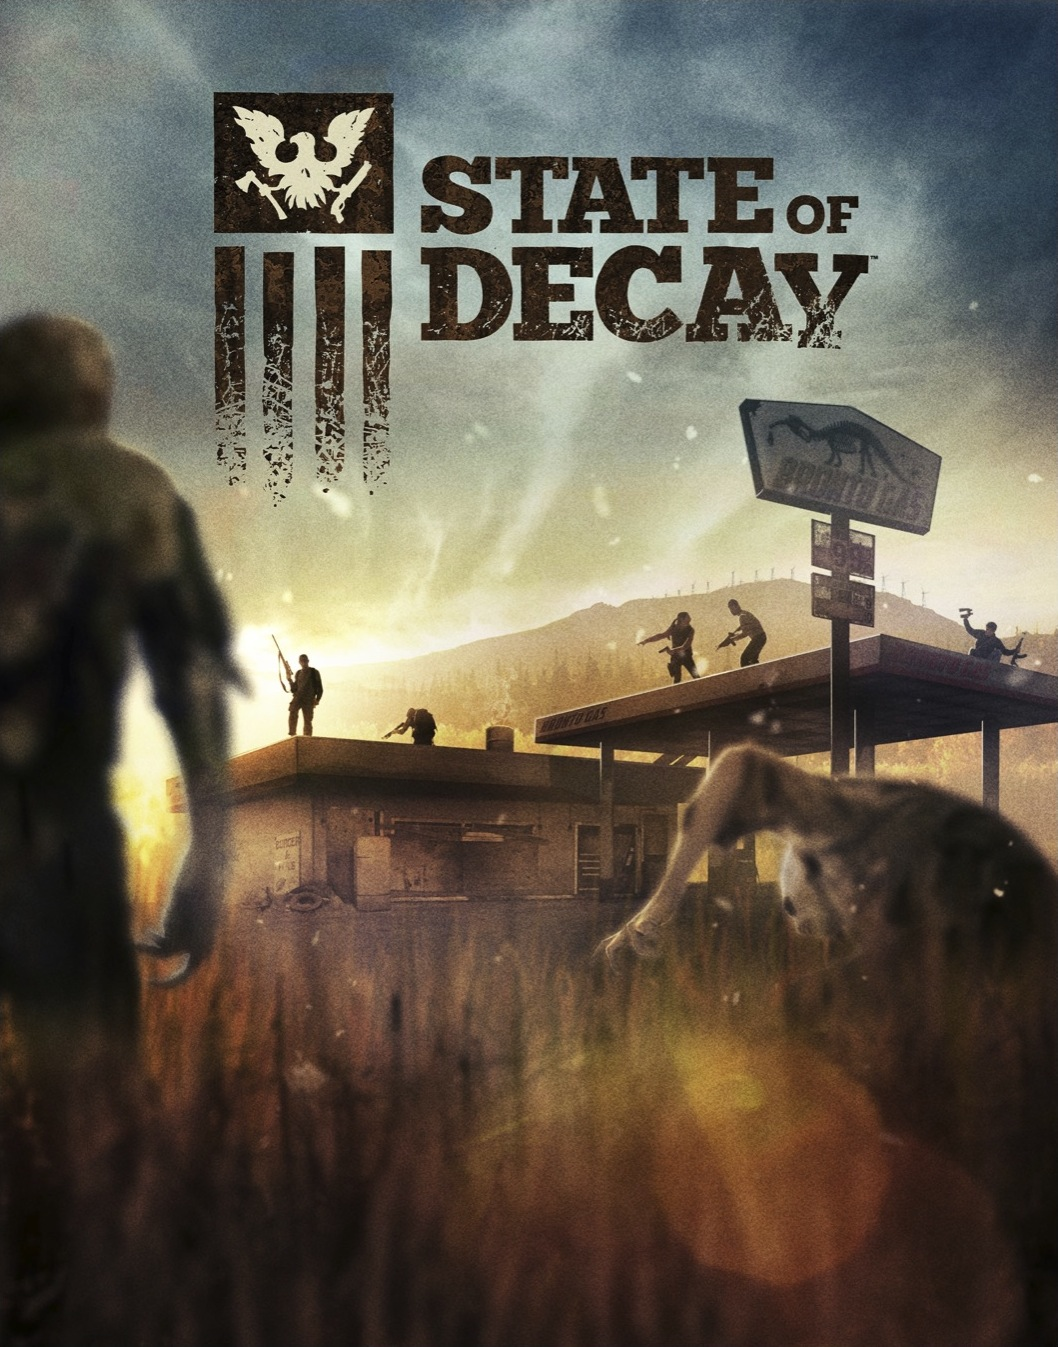 State of Decay – News, Reviews, Videos, and More